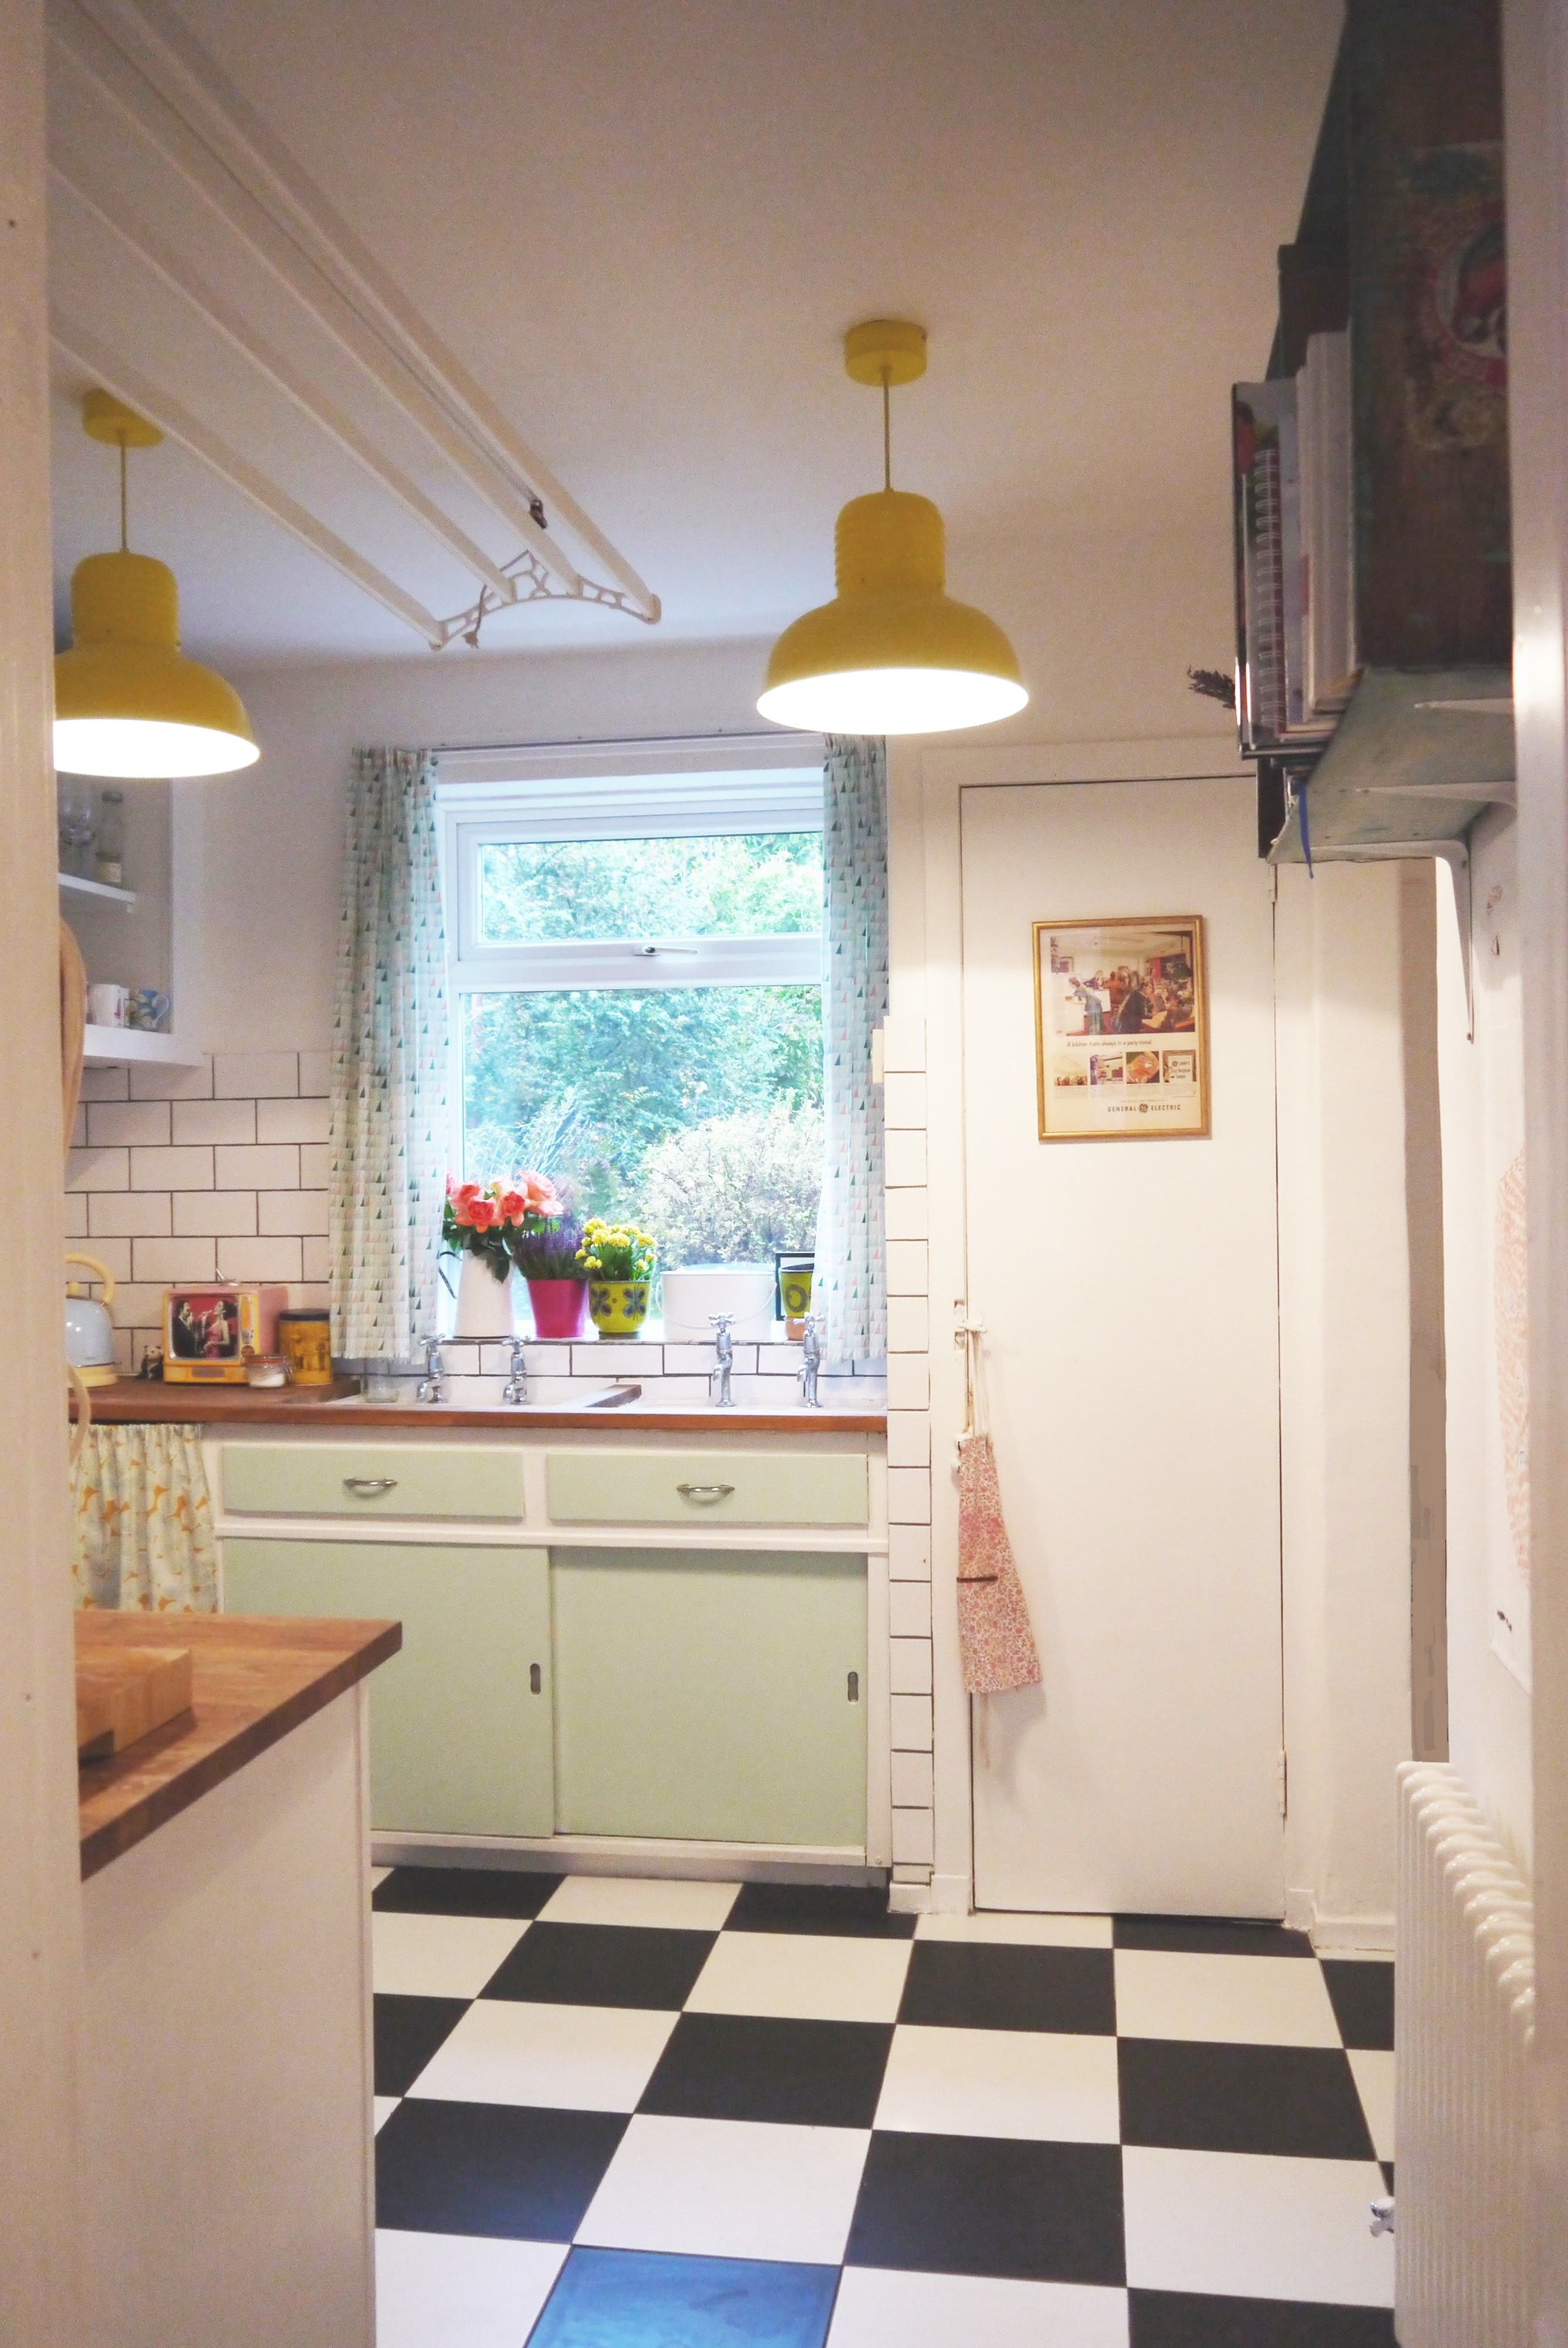 before after 1950 s kitchen renovation gets a modern update home decor kitchen kitchen on kitchen renovation id=13066